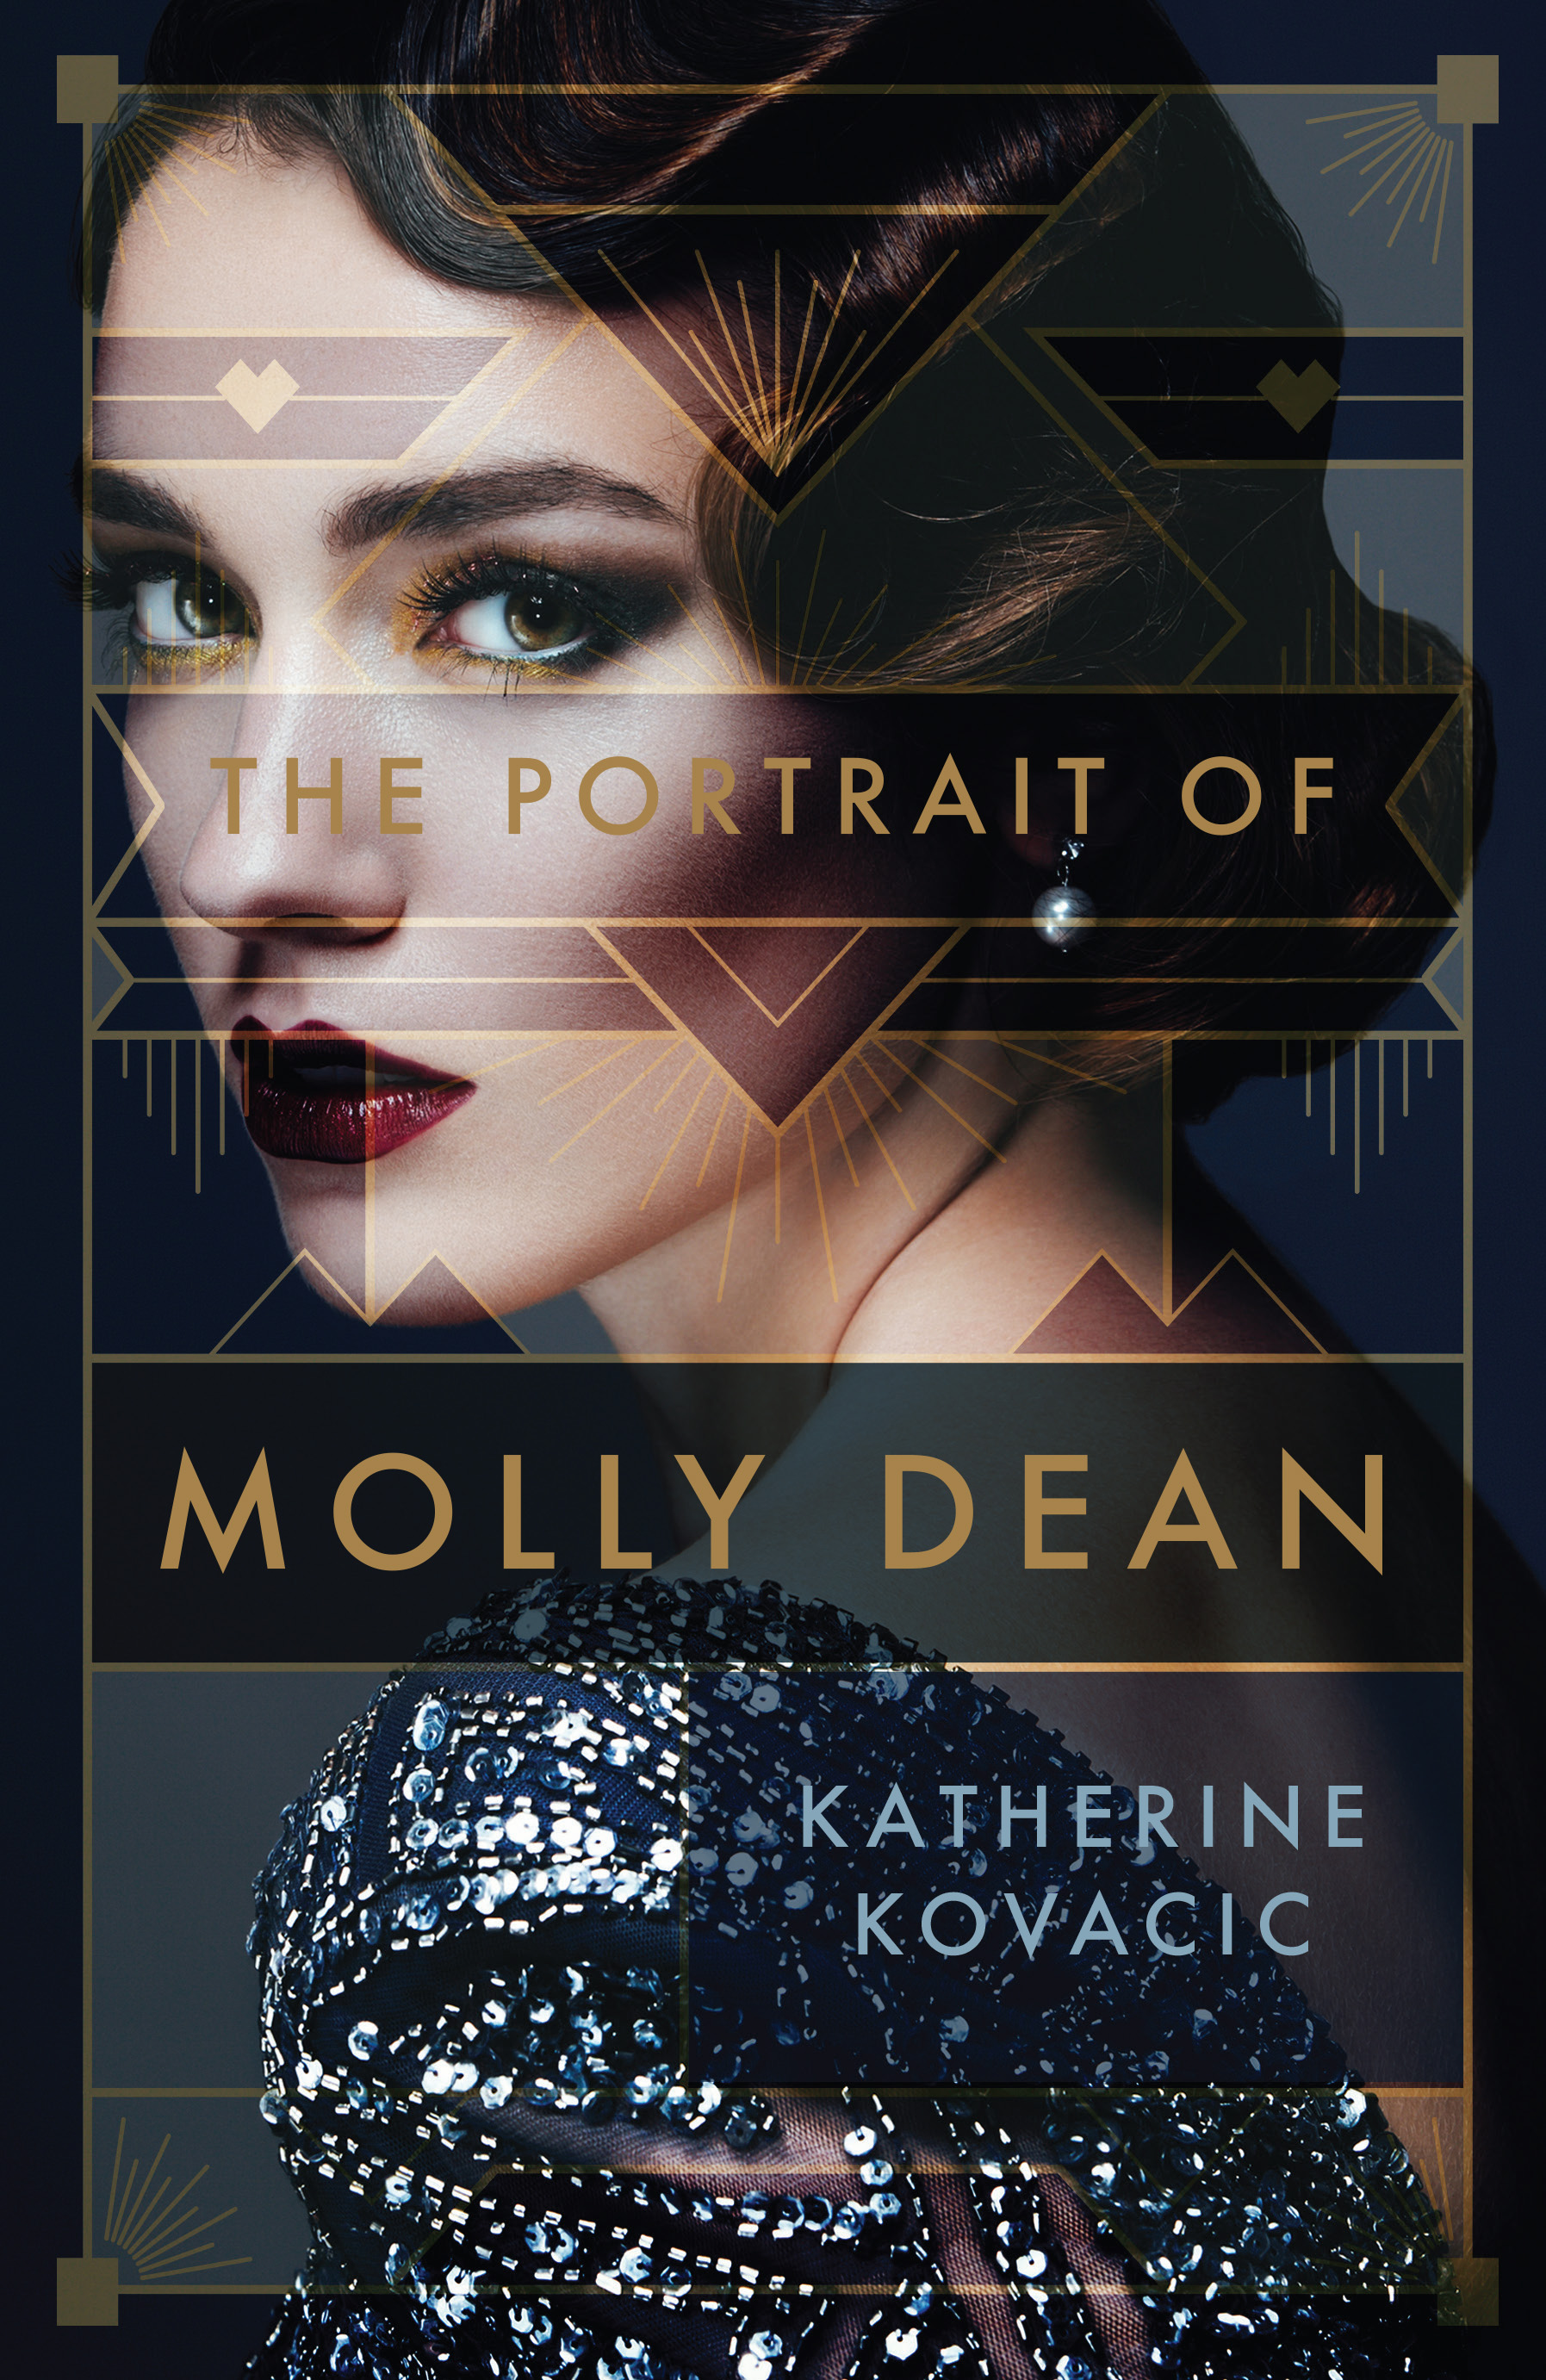 The Portrait of Molly Dean by Katherine Kovacic